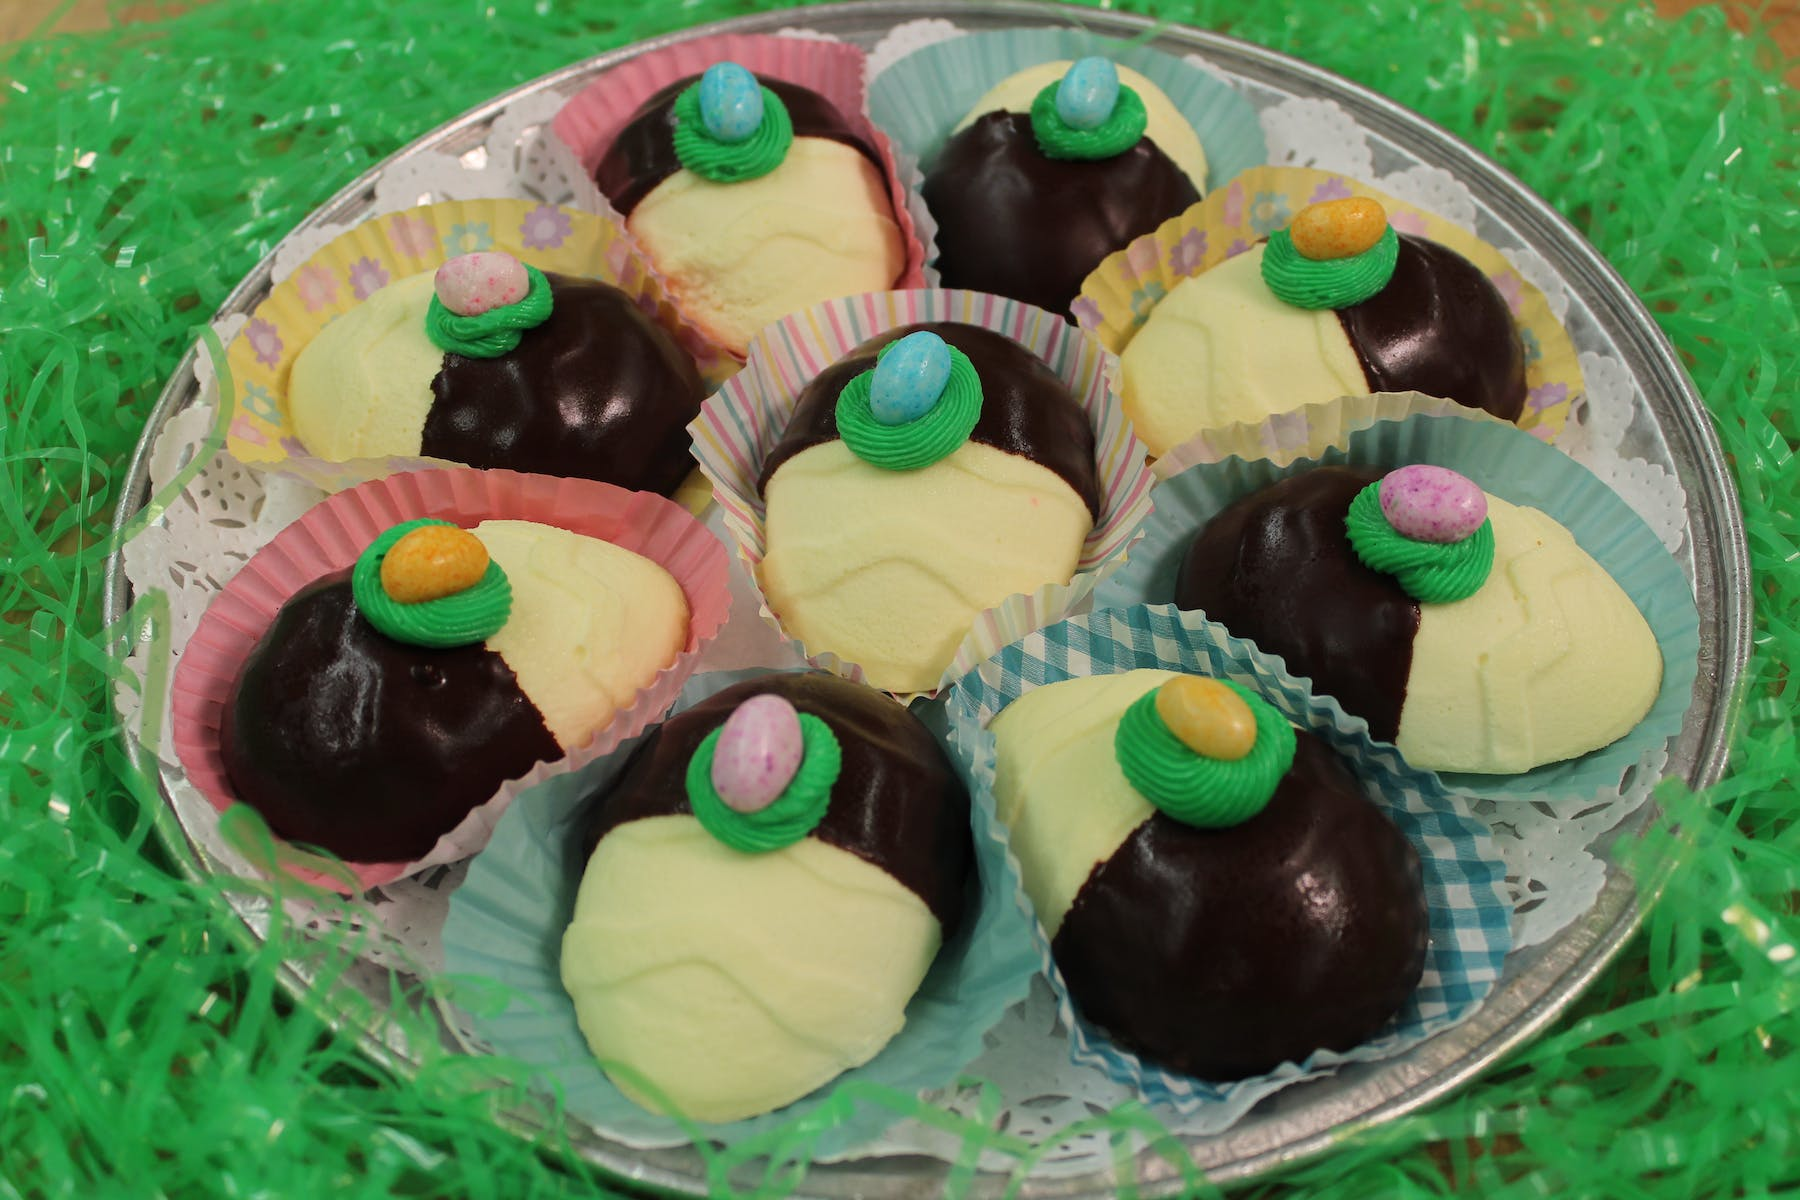 Cheesecake Easter Eggs covered in chocolate